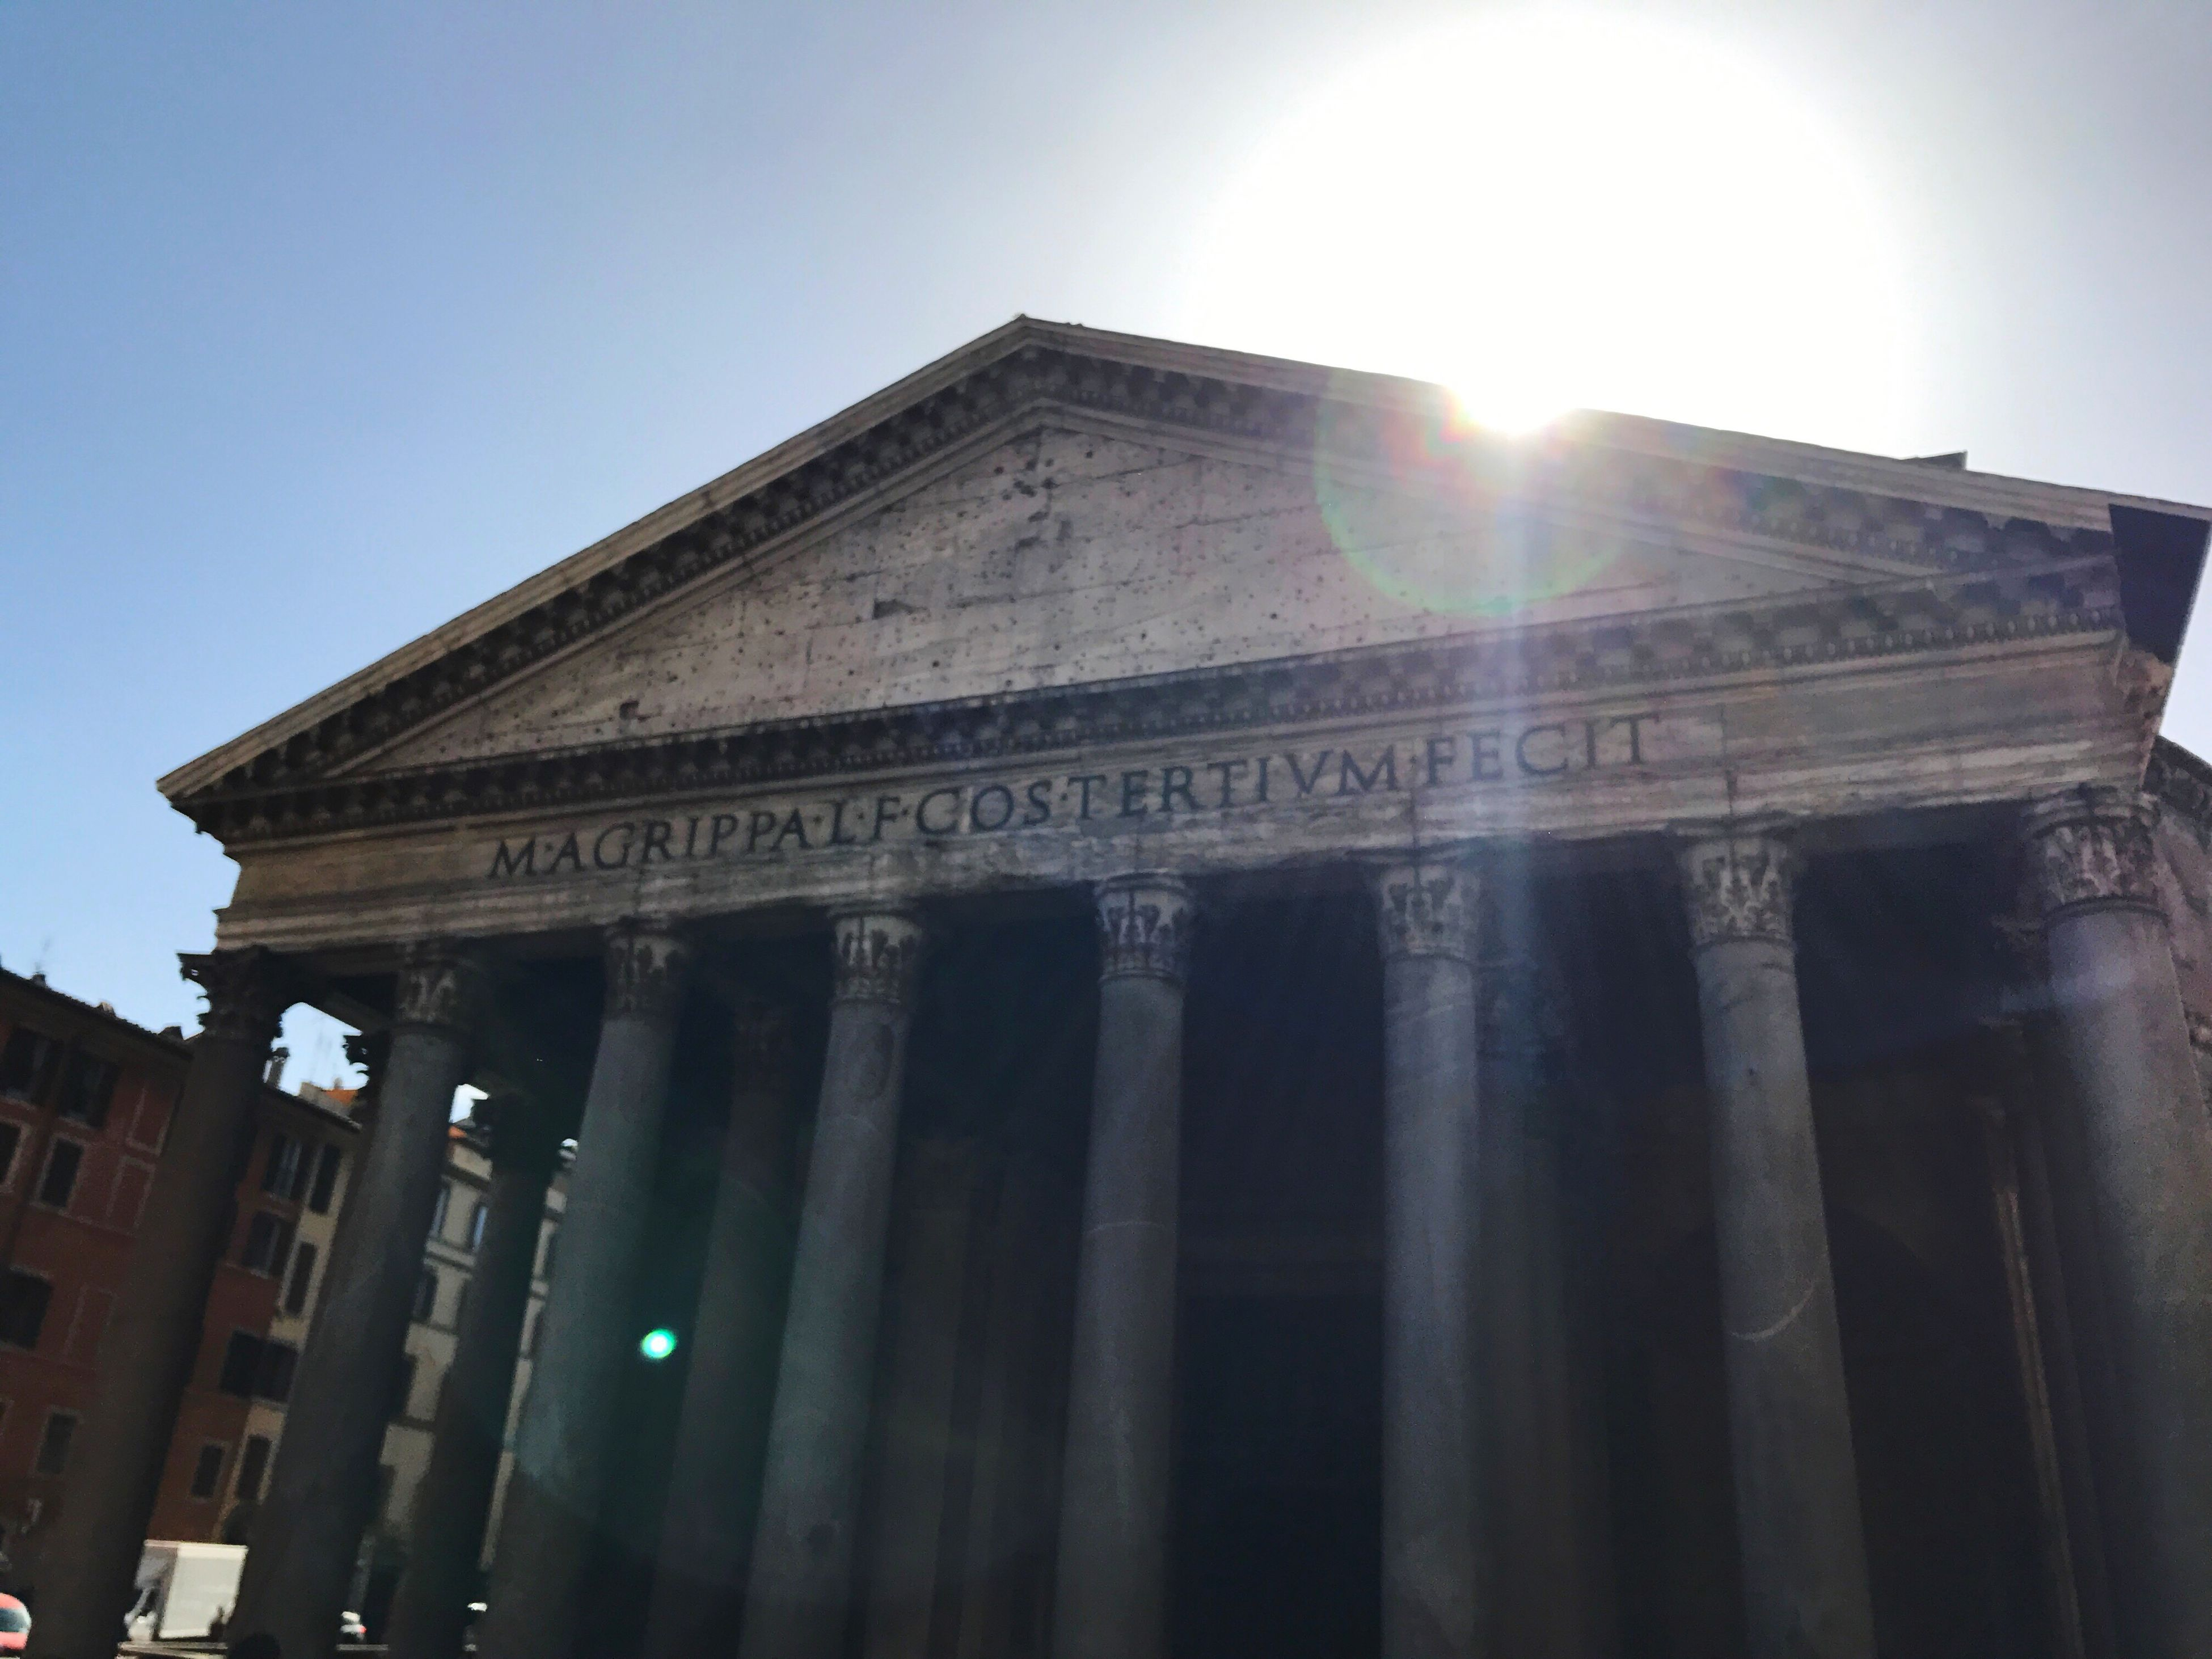 architecture, built structure, sunlight, low angle view, building exterior, sunbeam, text, lens flare, tourism, travel, travel destinations, history, clear sky, architectural column, outdoors, city, sky, no people, day, pediment, city gate